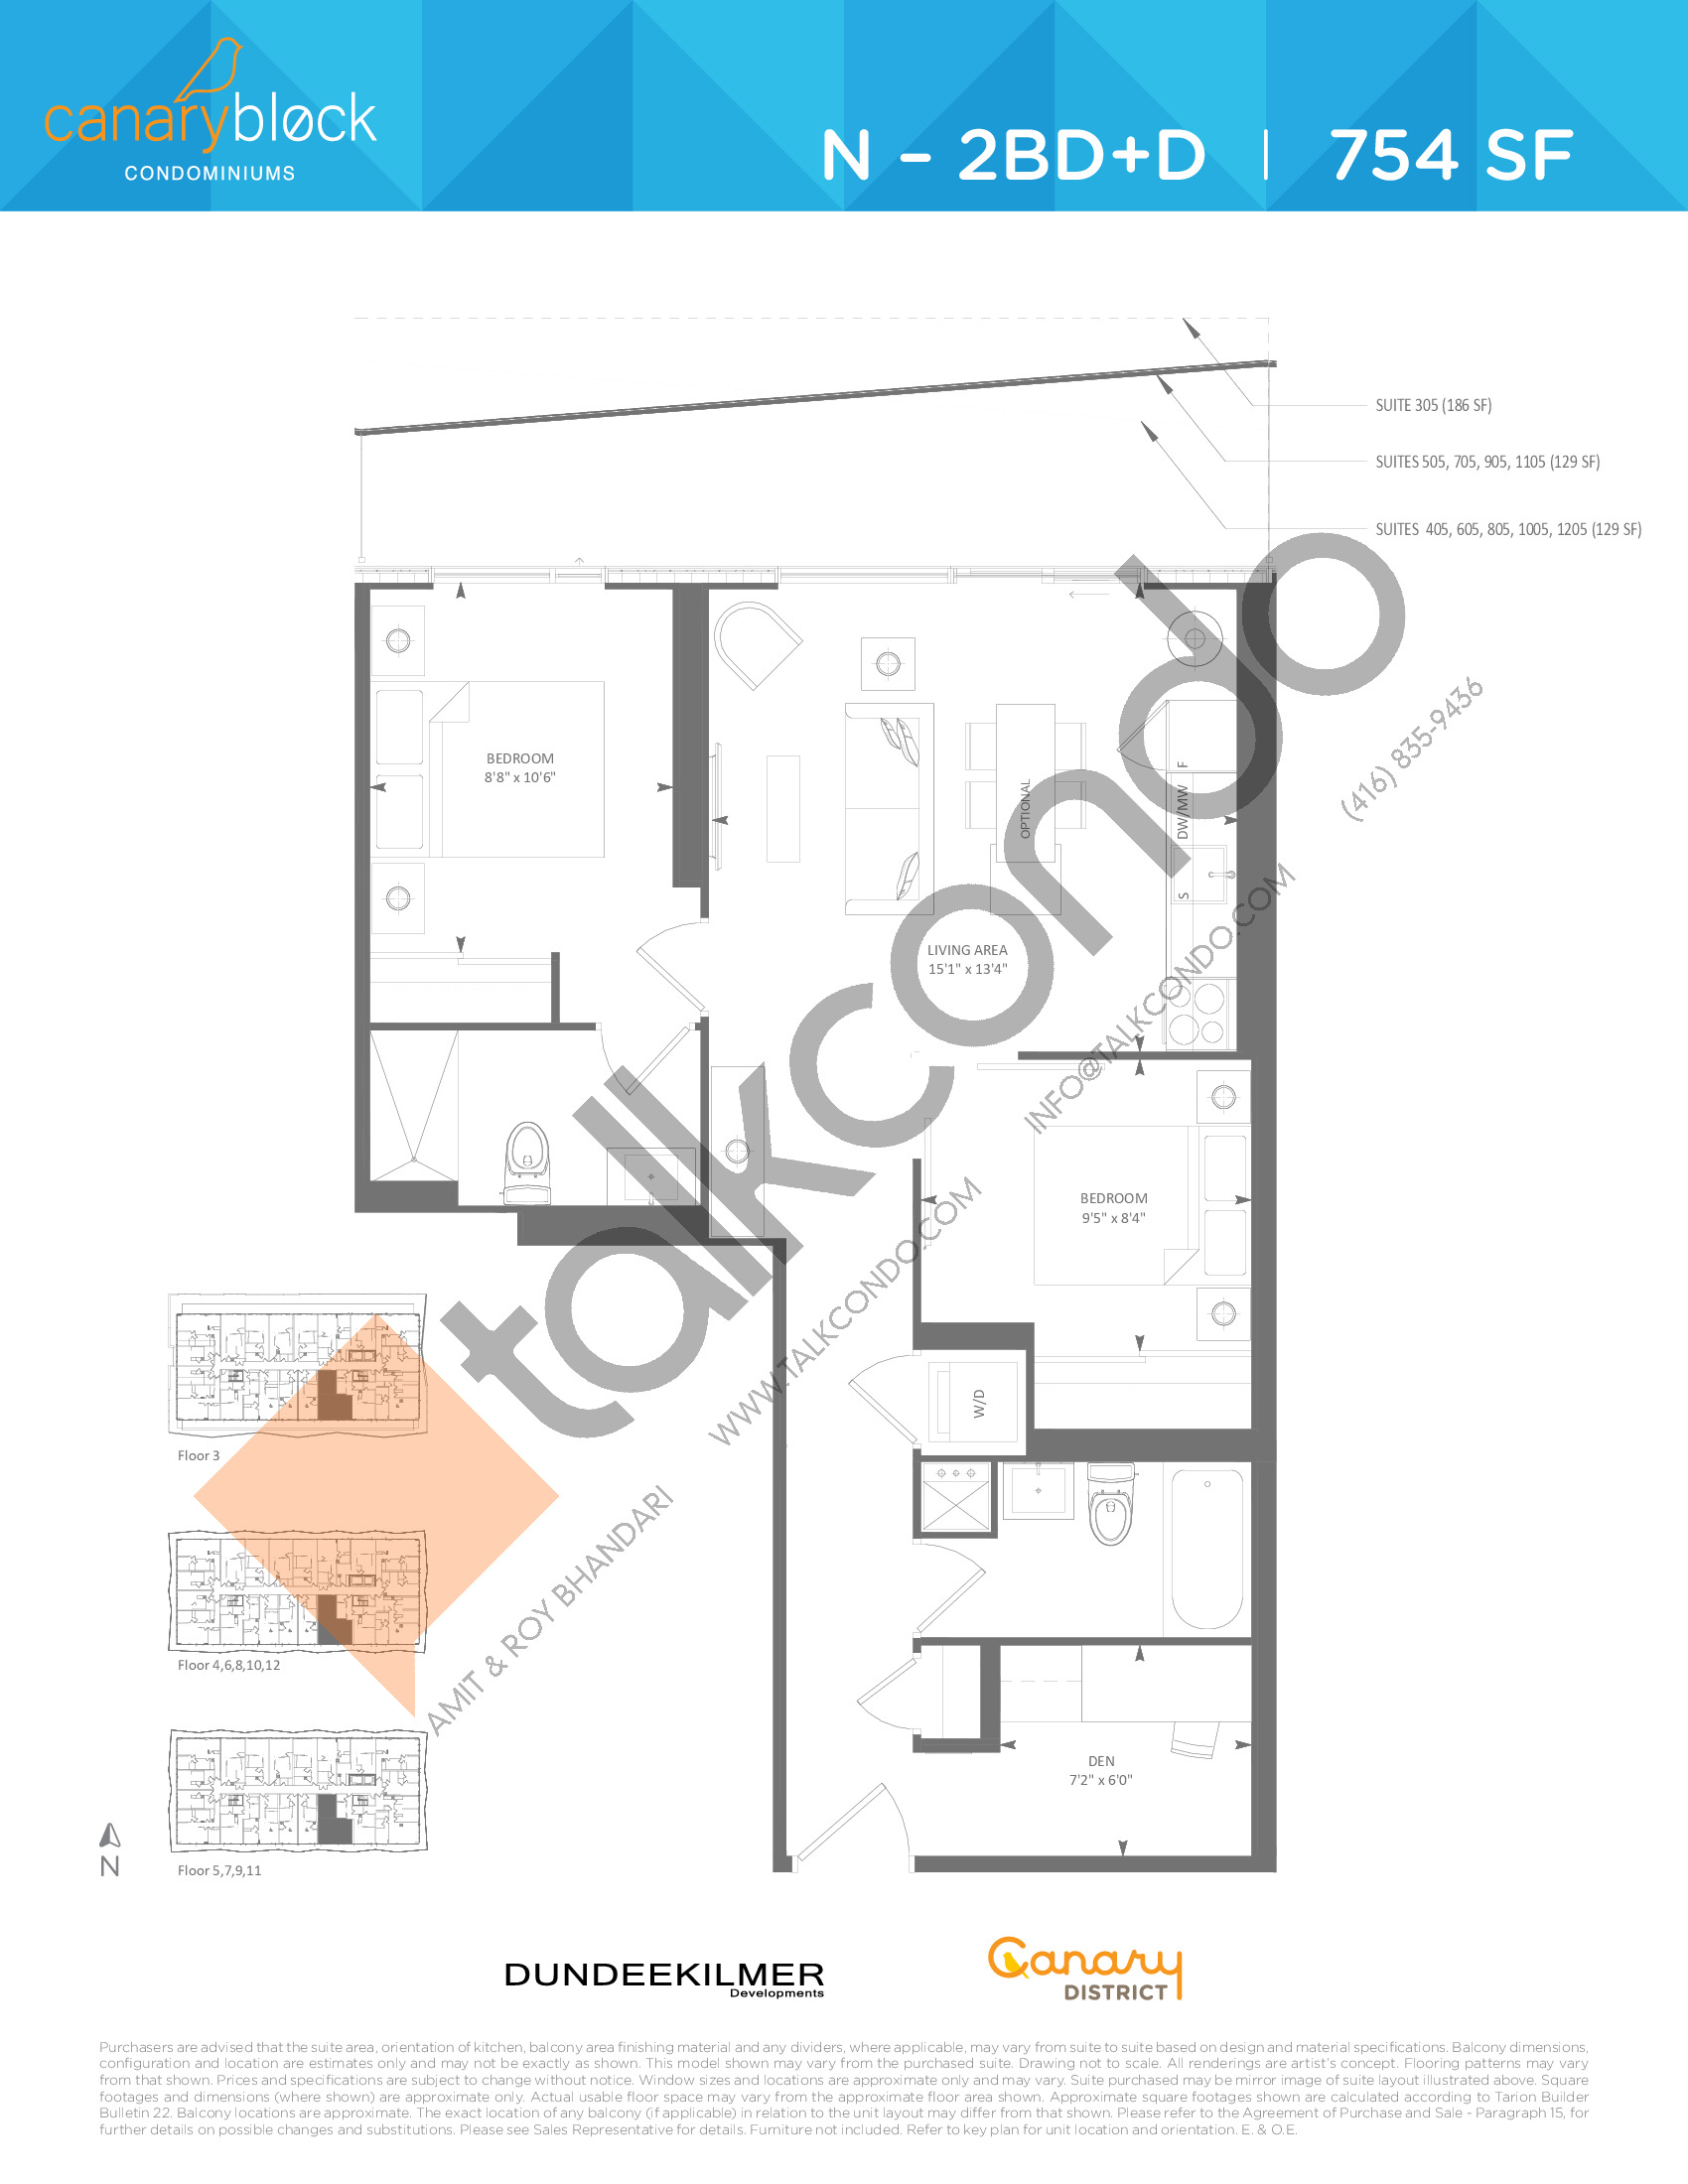 N - 2BD+D Floor Plan at Canary Block Condos - 754 sq.ft